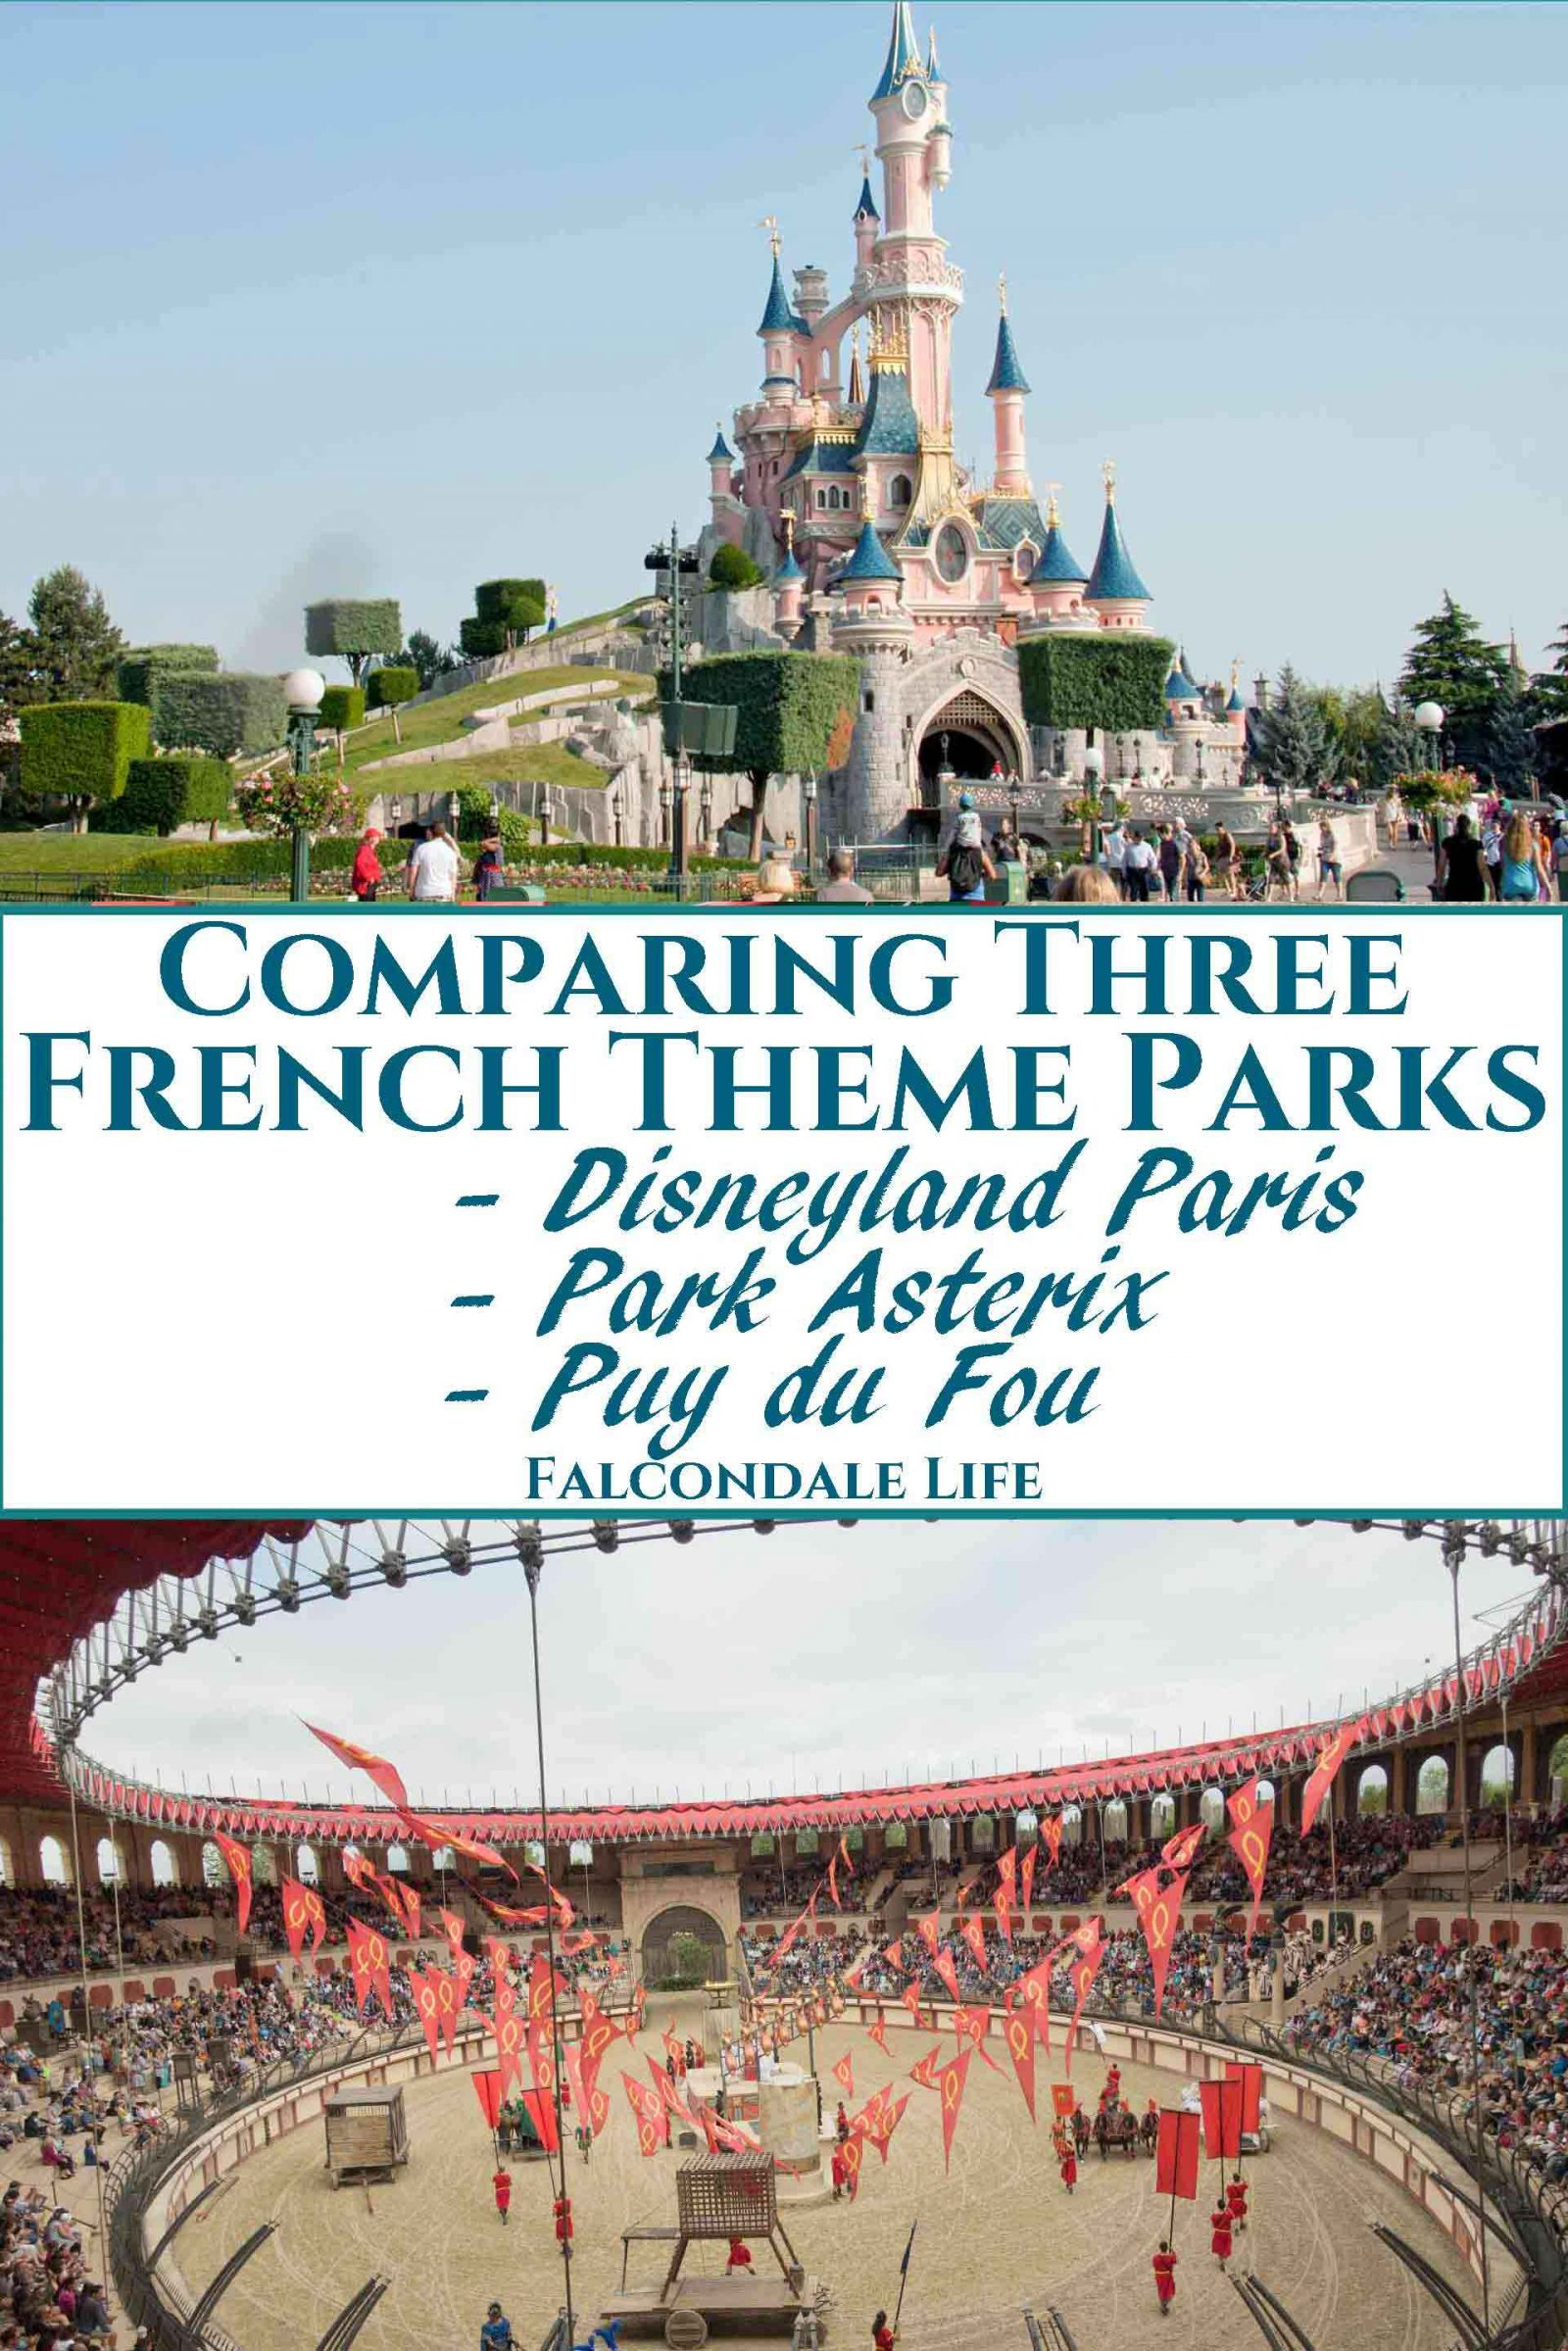 Compare French theme parks Disneyland, Parc Asterix and Puy du Fou. Which park has rides and attractions to suit your family? How to plan a visit. Comparing three French Theme Parks on Falcondale Life blog. Image description: The castle at Disneyland, the Roman arena at Puy du Fou and blog title.